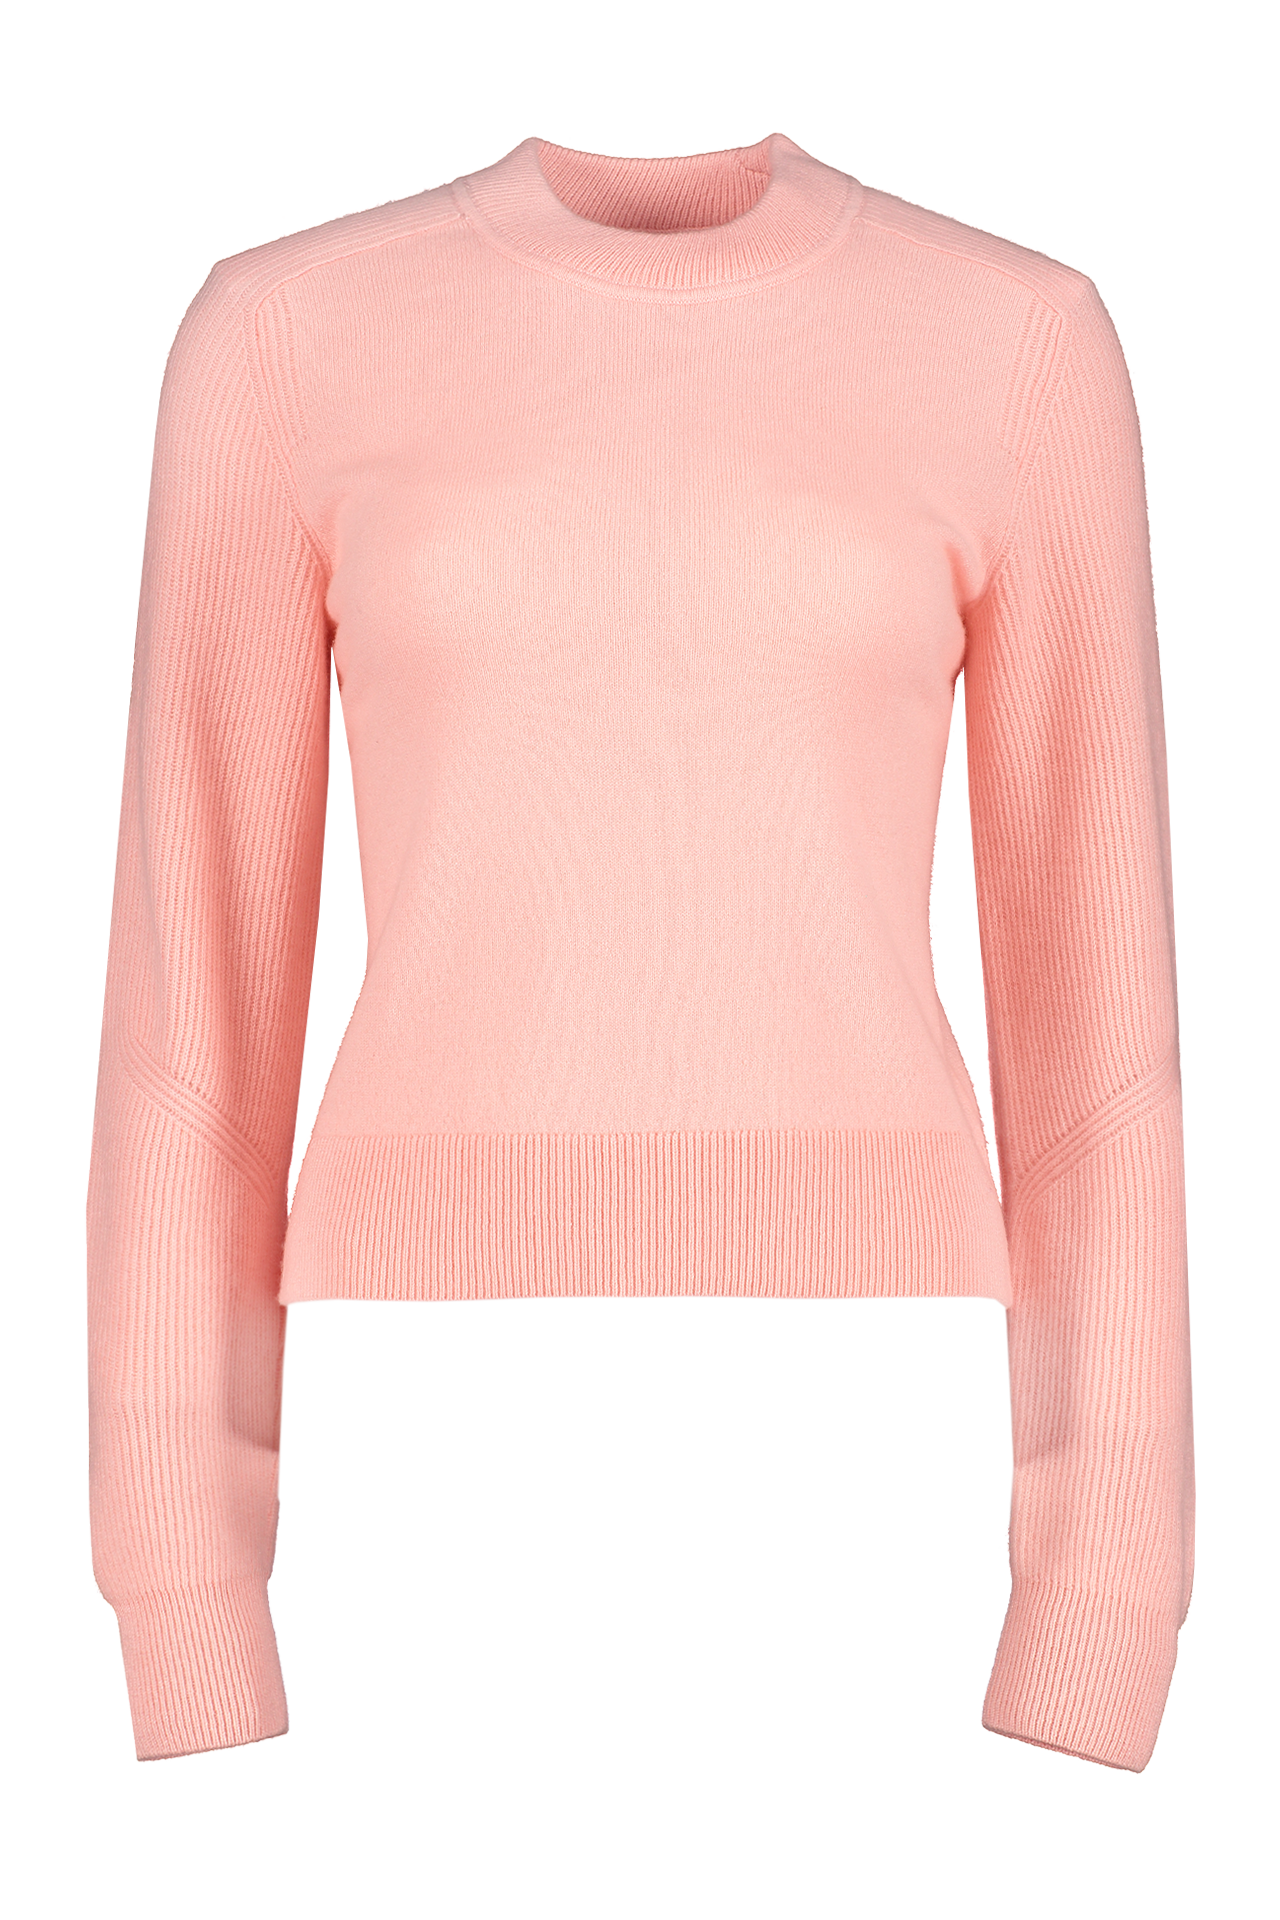 Women's Logan Cashmere Crewneck Sweater